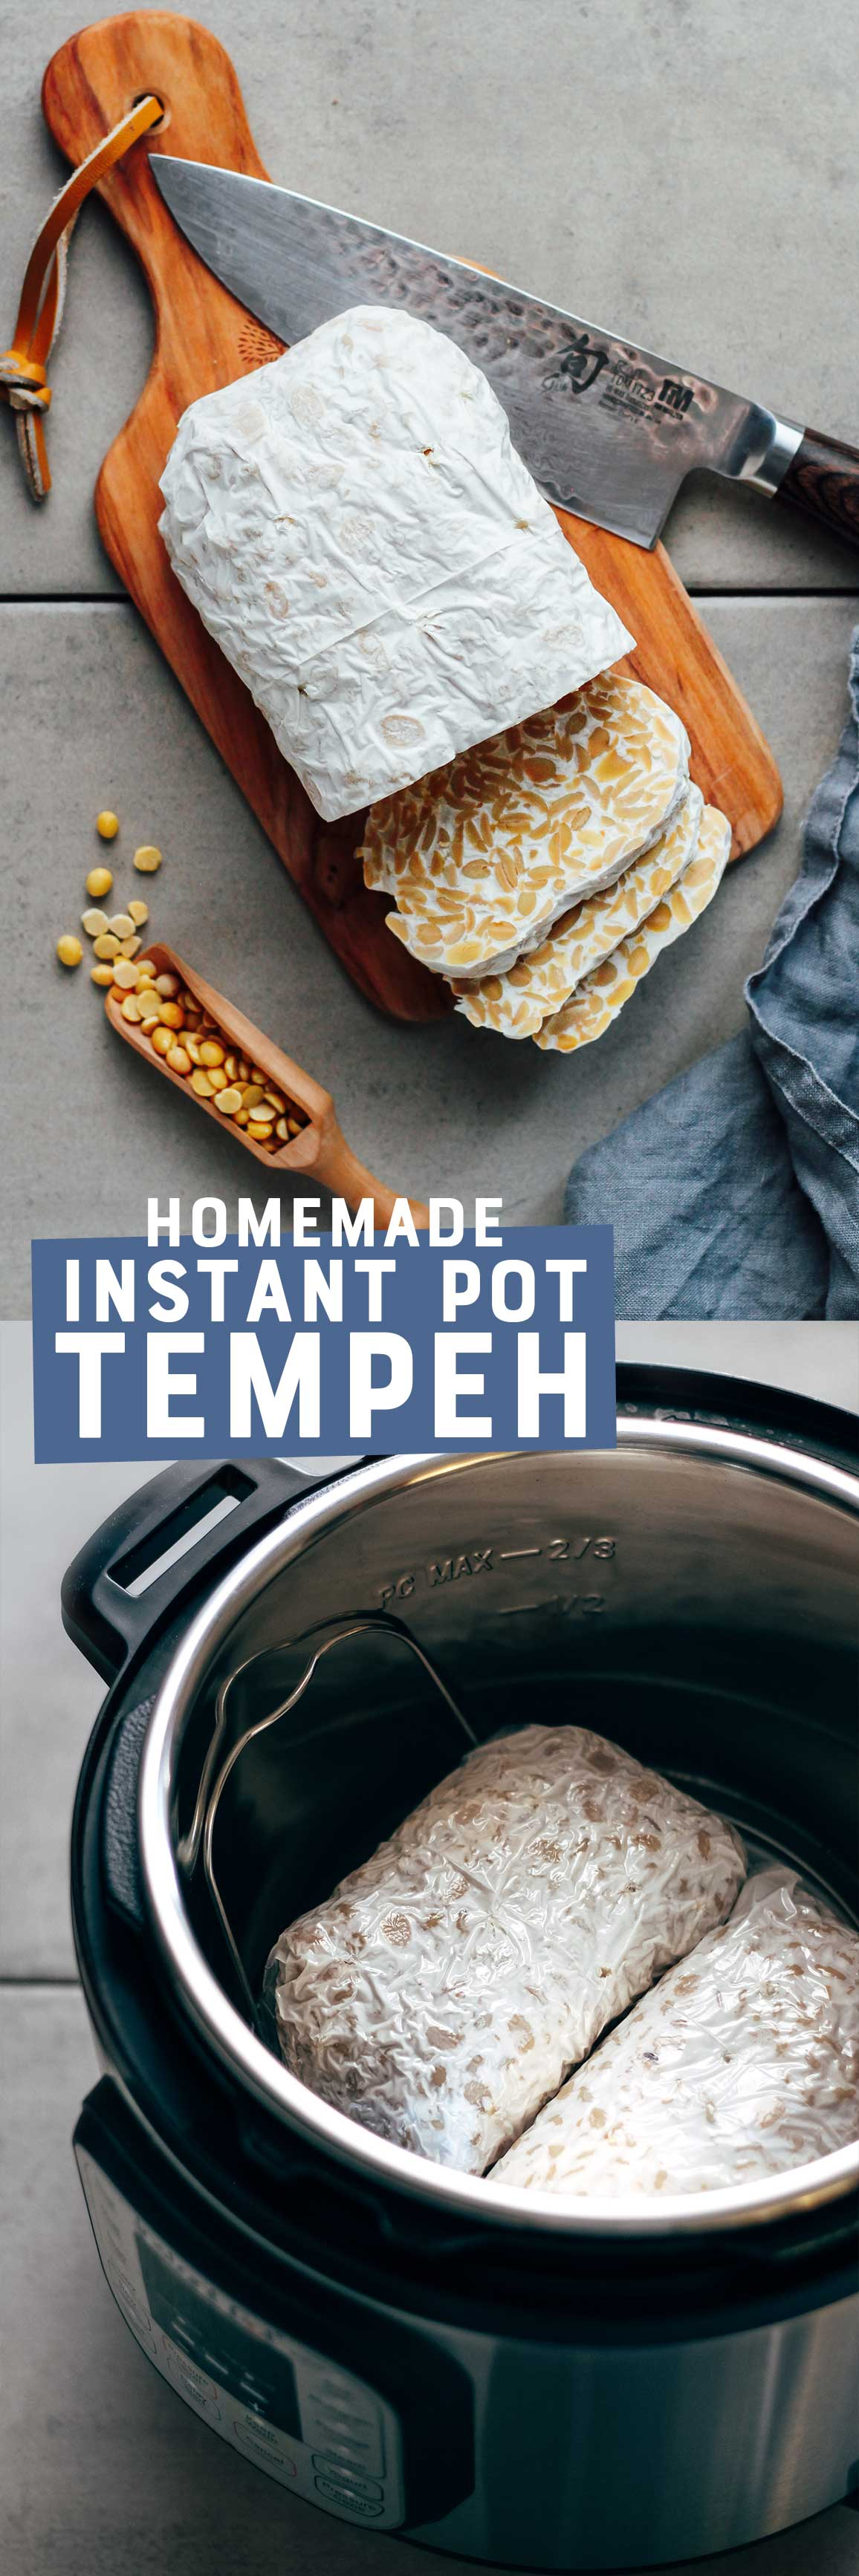 How to Make Tempeh in an Instant Pot